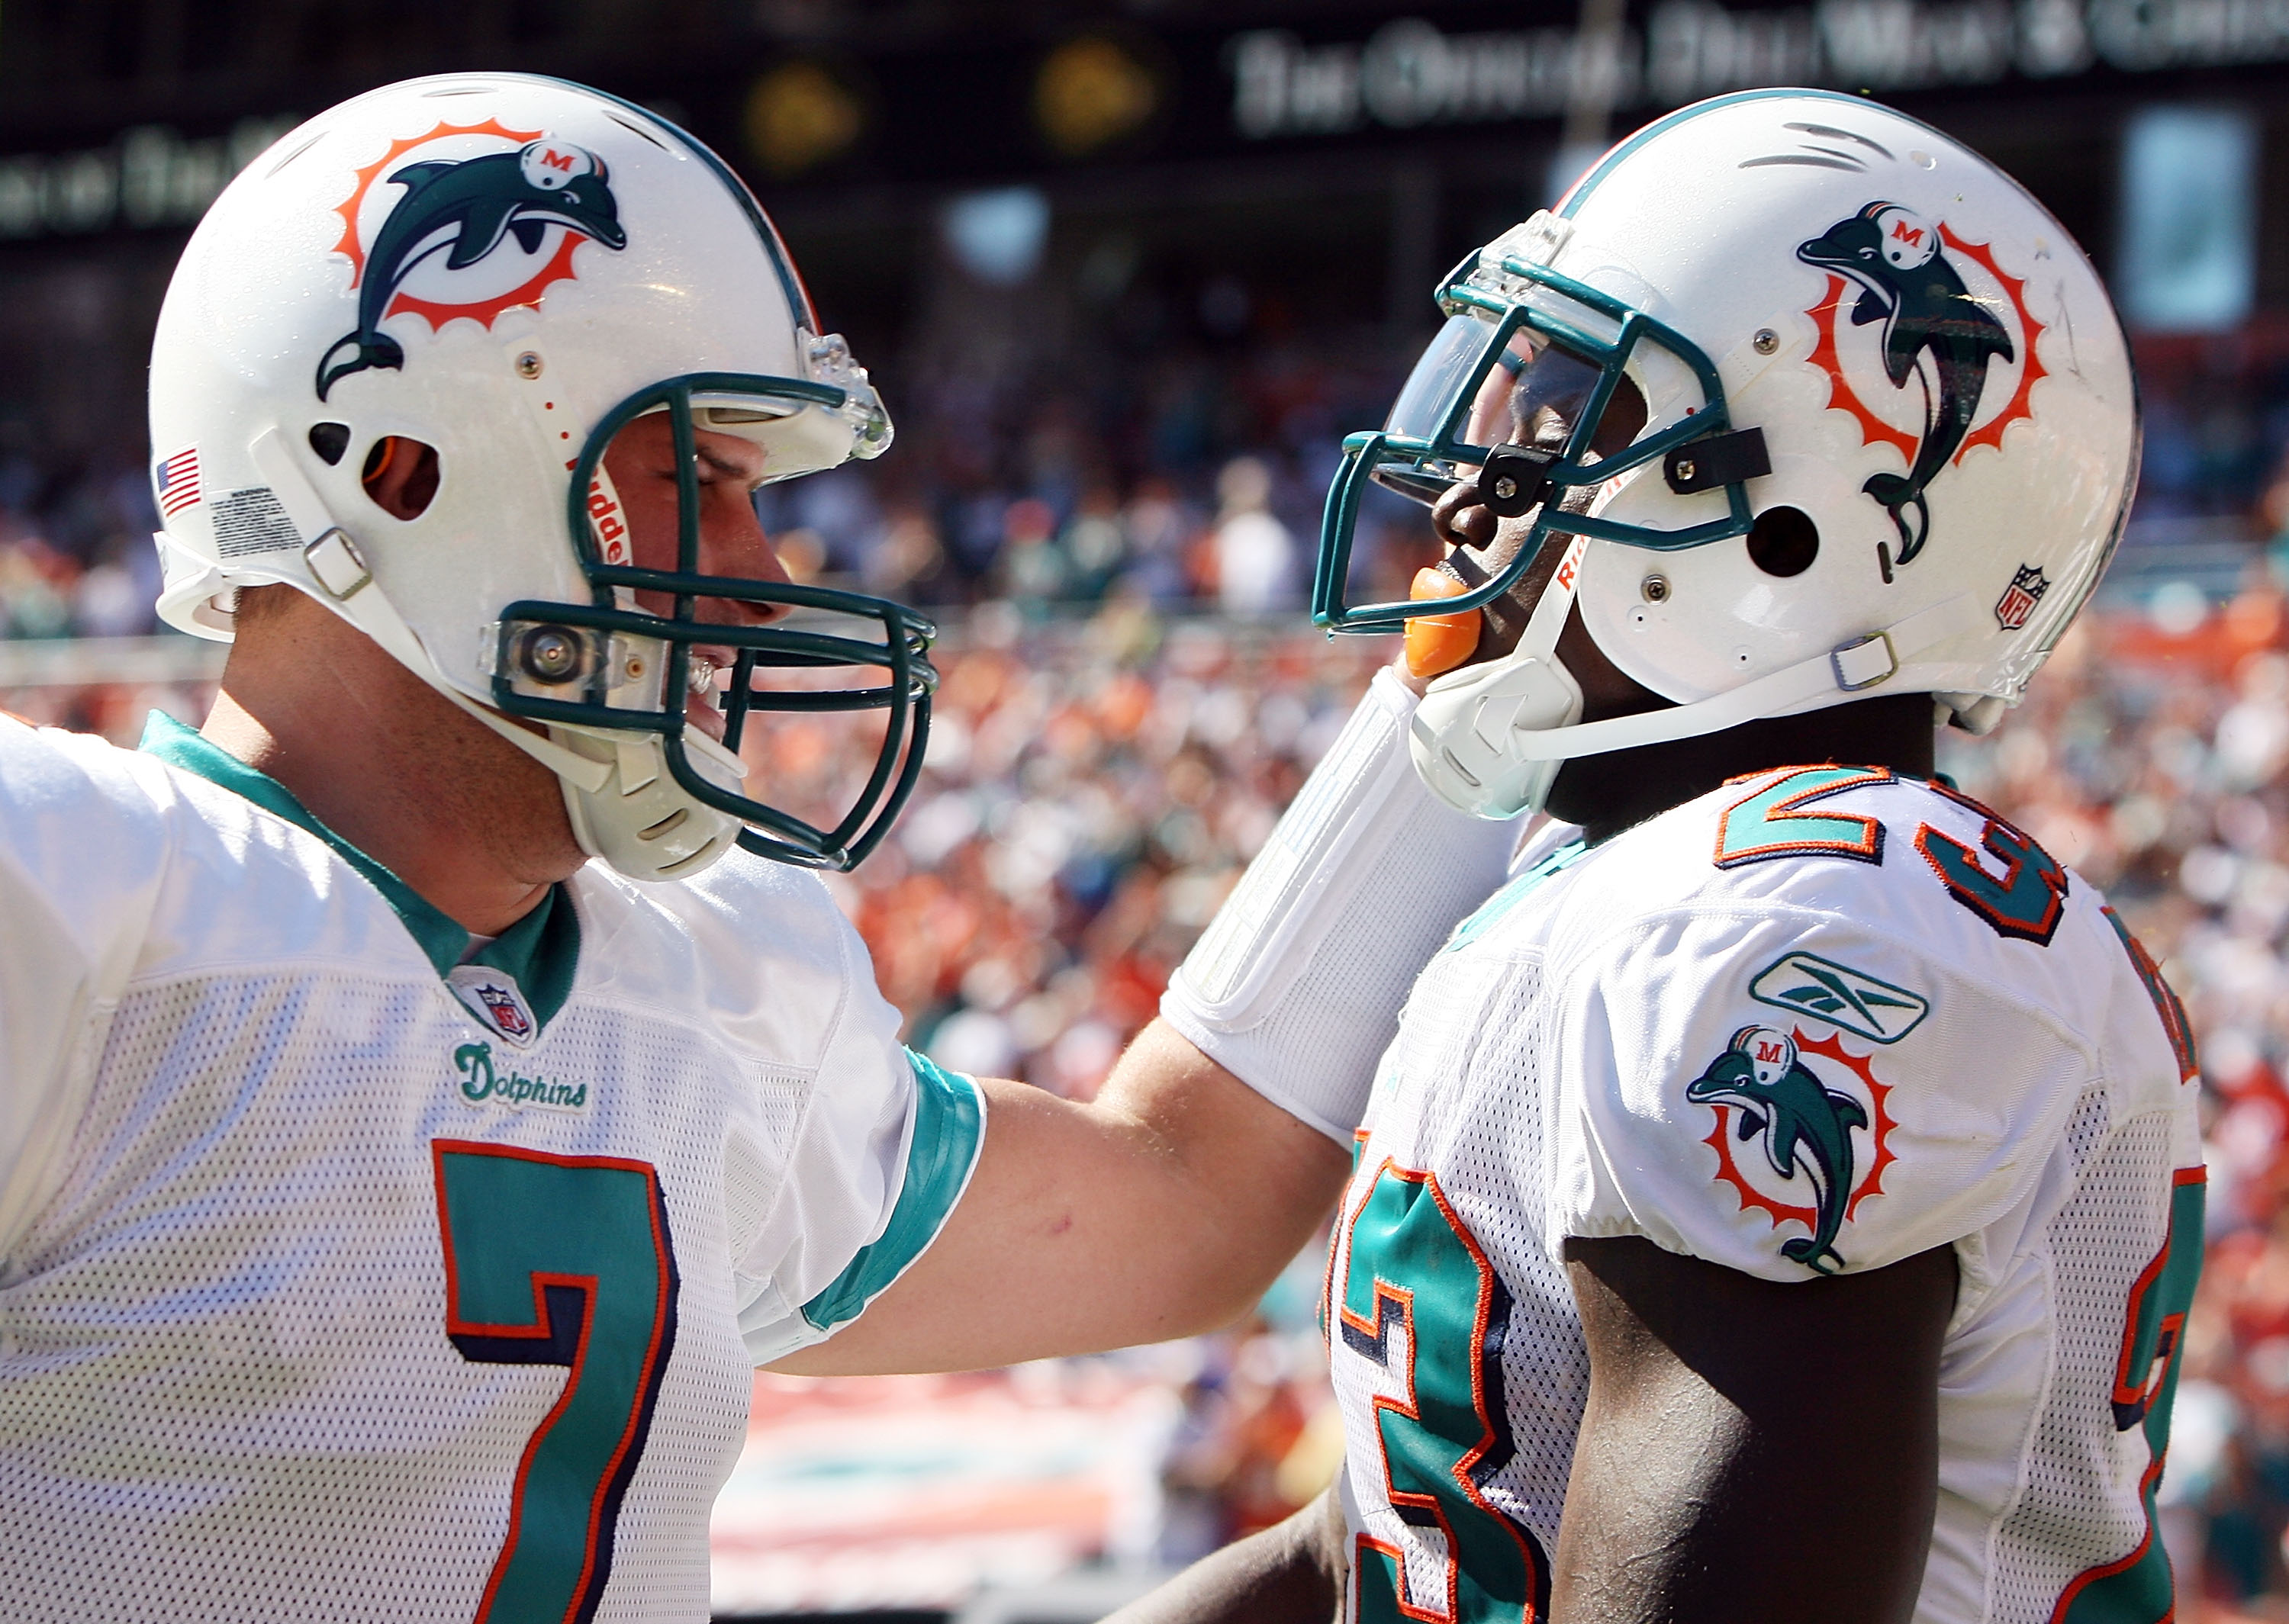 MIAMI GARDENS, FL - NOVEMBER 15:  Quarterback Chad Henne #7 and running back Ronnie Brown #23 of the Miami Dolphins celebrate after a long run against the Tampa Bay Buccaneers at Land Shark Stadium on November 15, 2009 in Miami Gardens, Florida. The Dolph